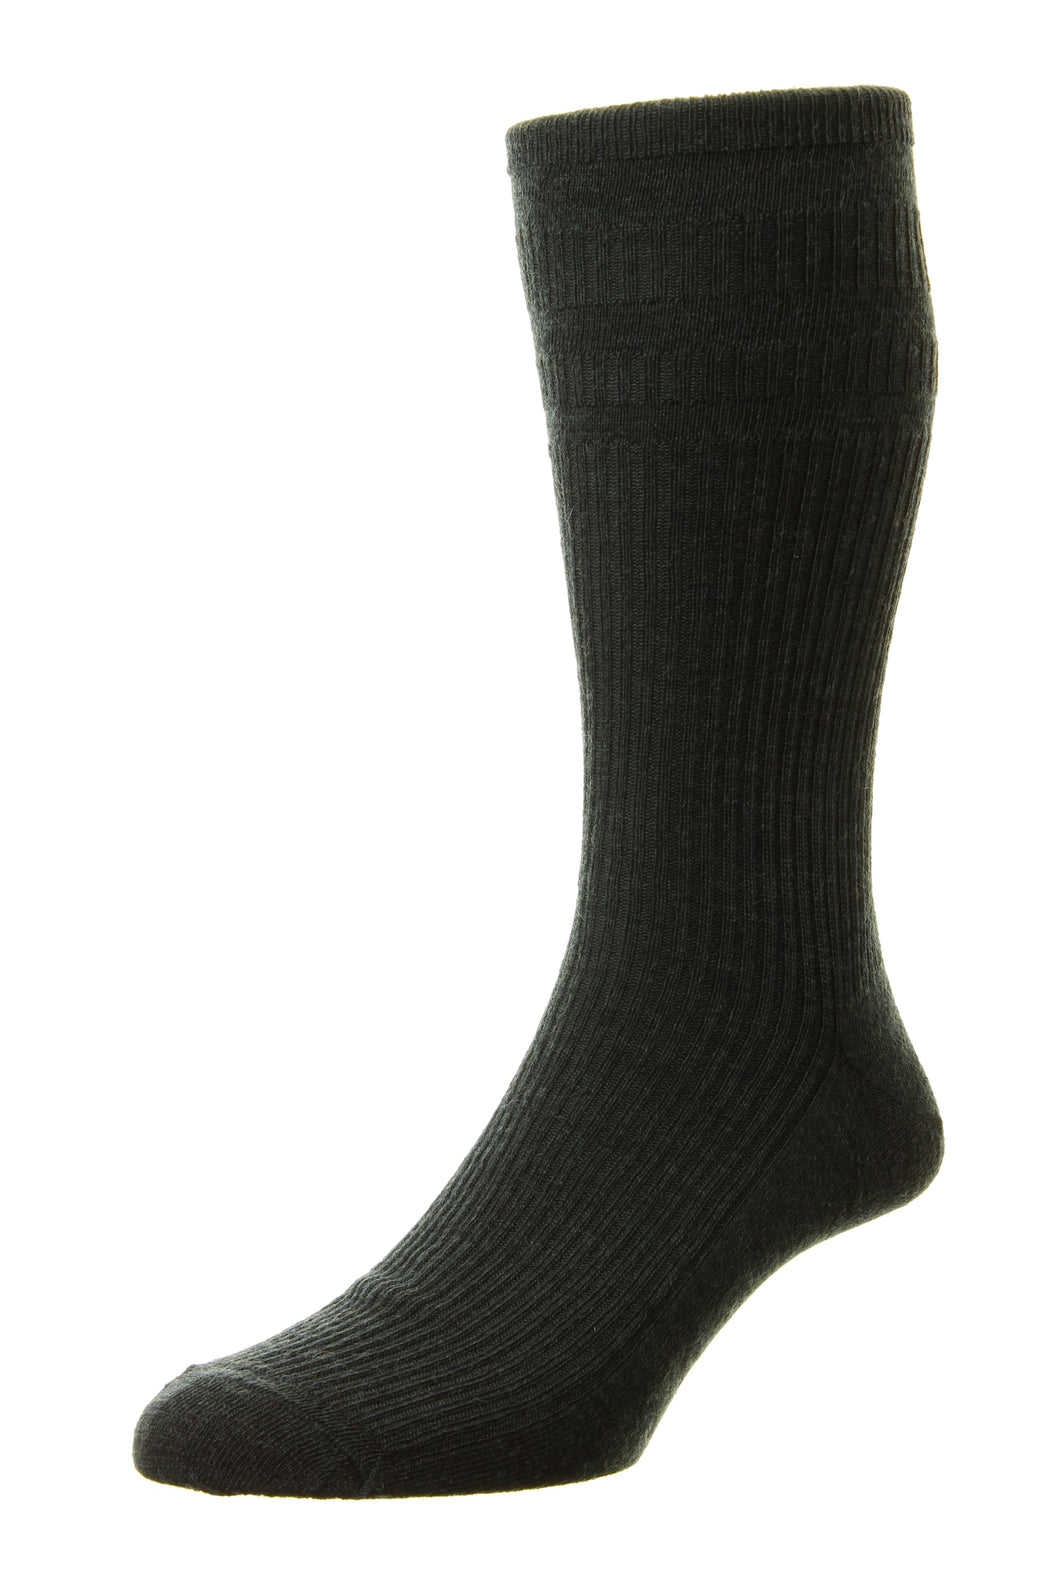 HJ90 Charcoal. The Original Wool Softop Sock, size 6-11